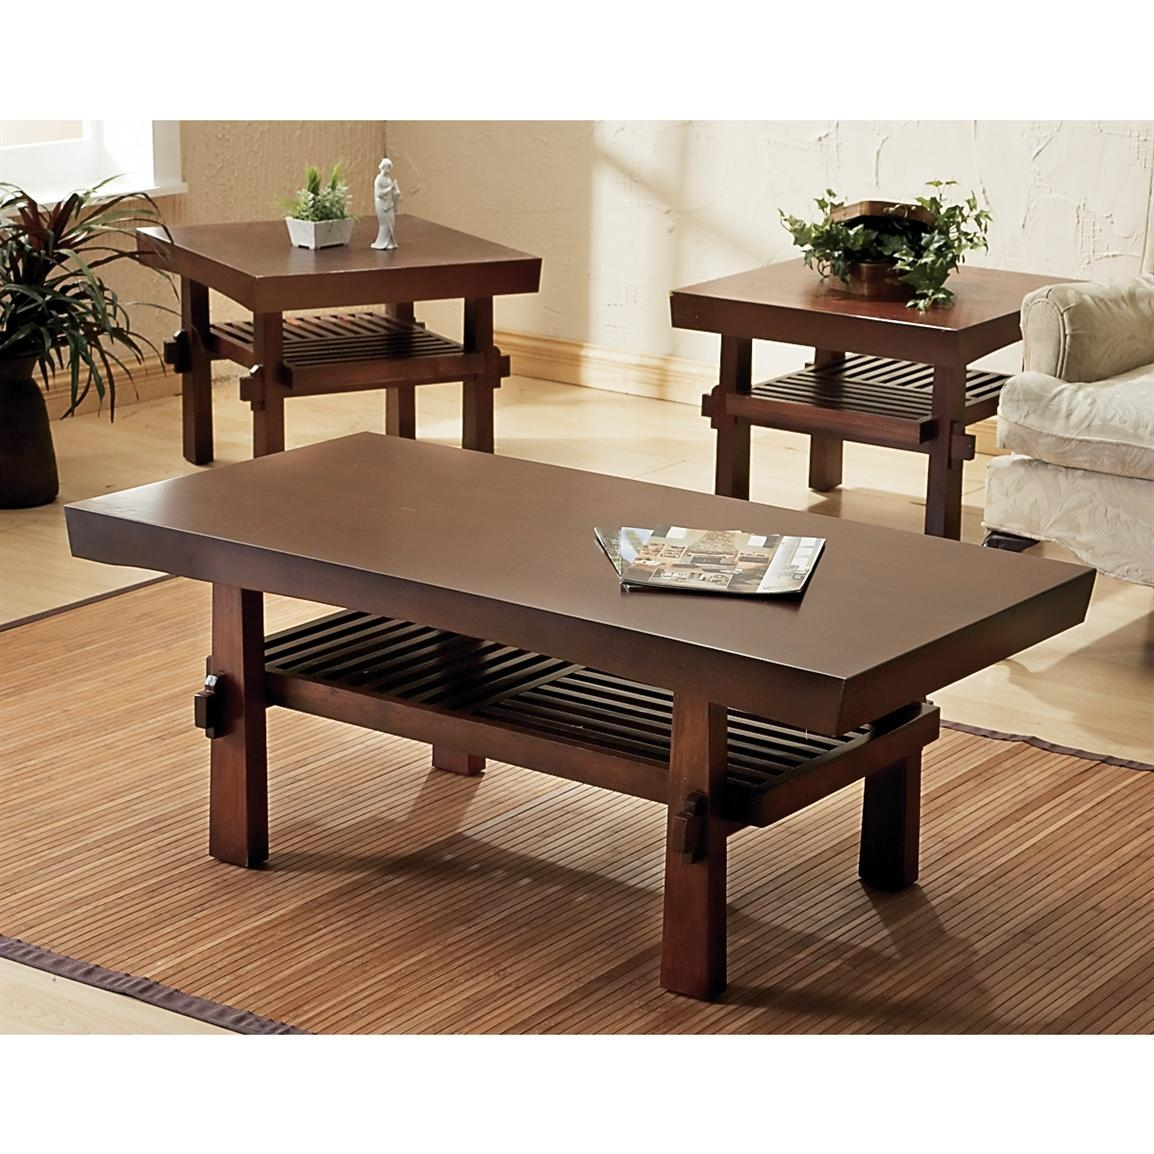 attractive modern end table for living room rectangle dark oak wood coffee table with casters black painted wood end table white shag area rug